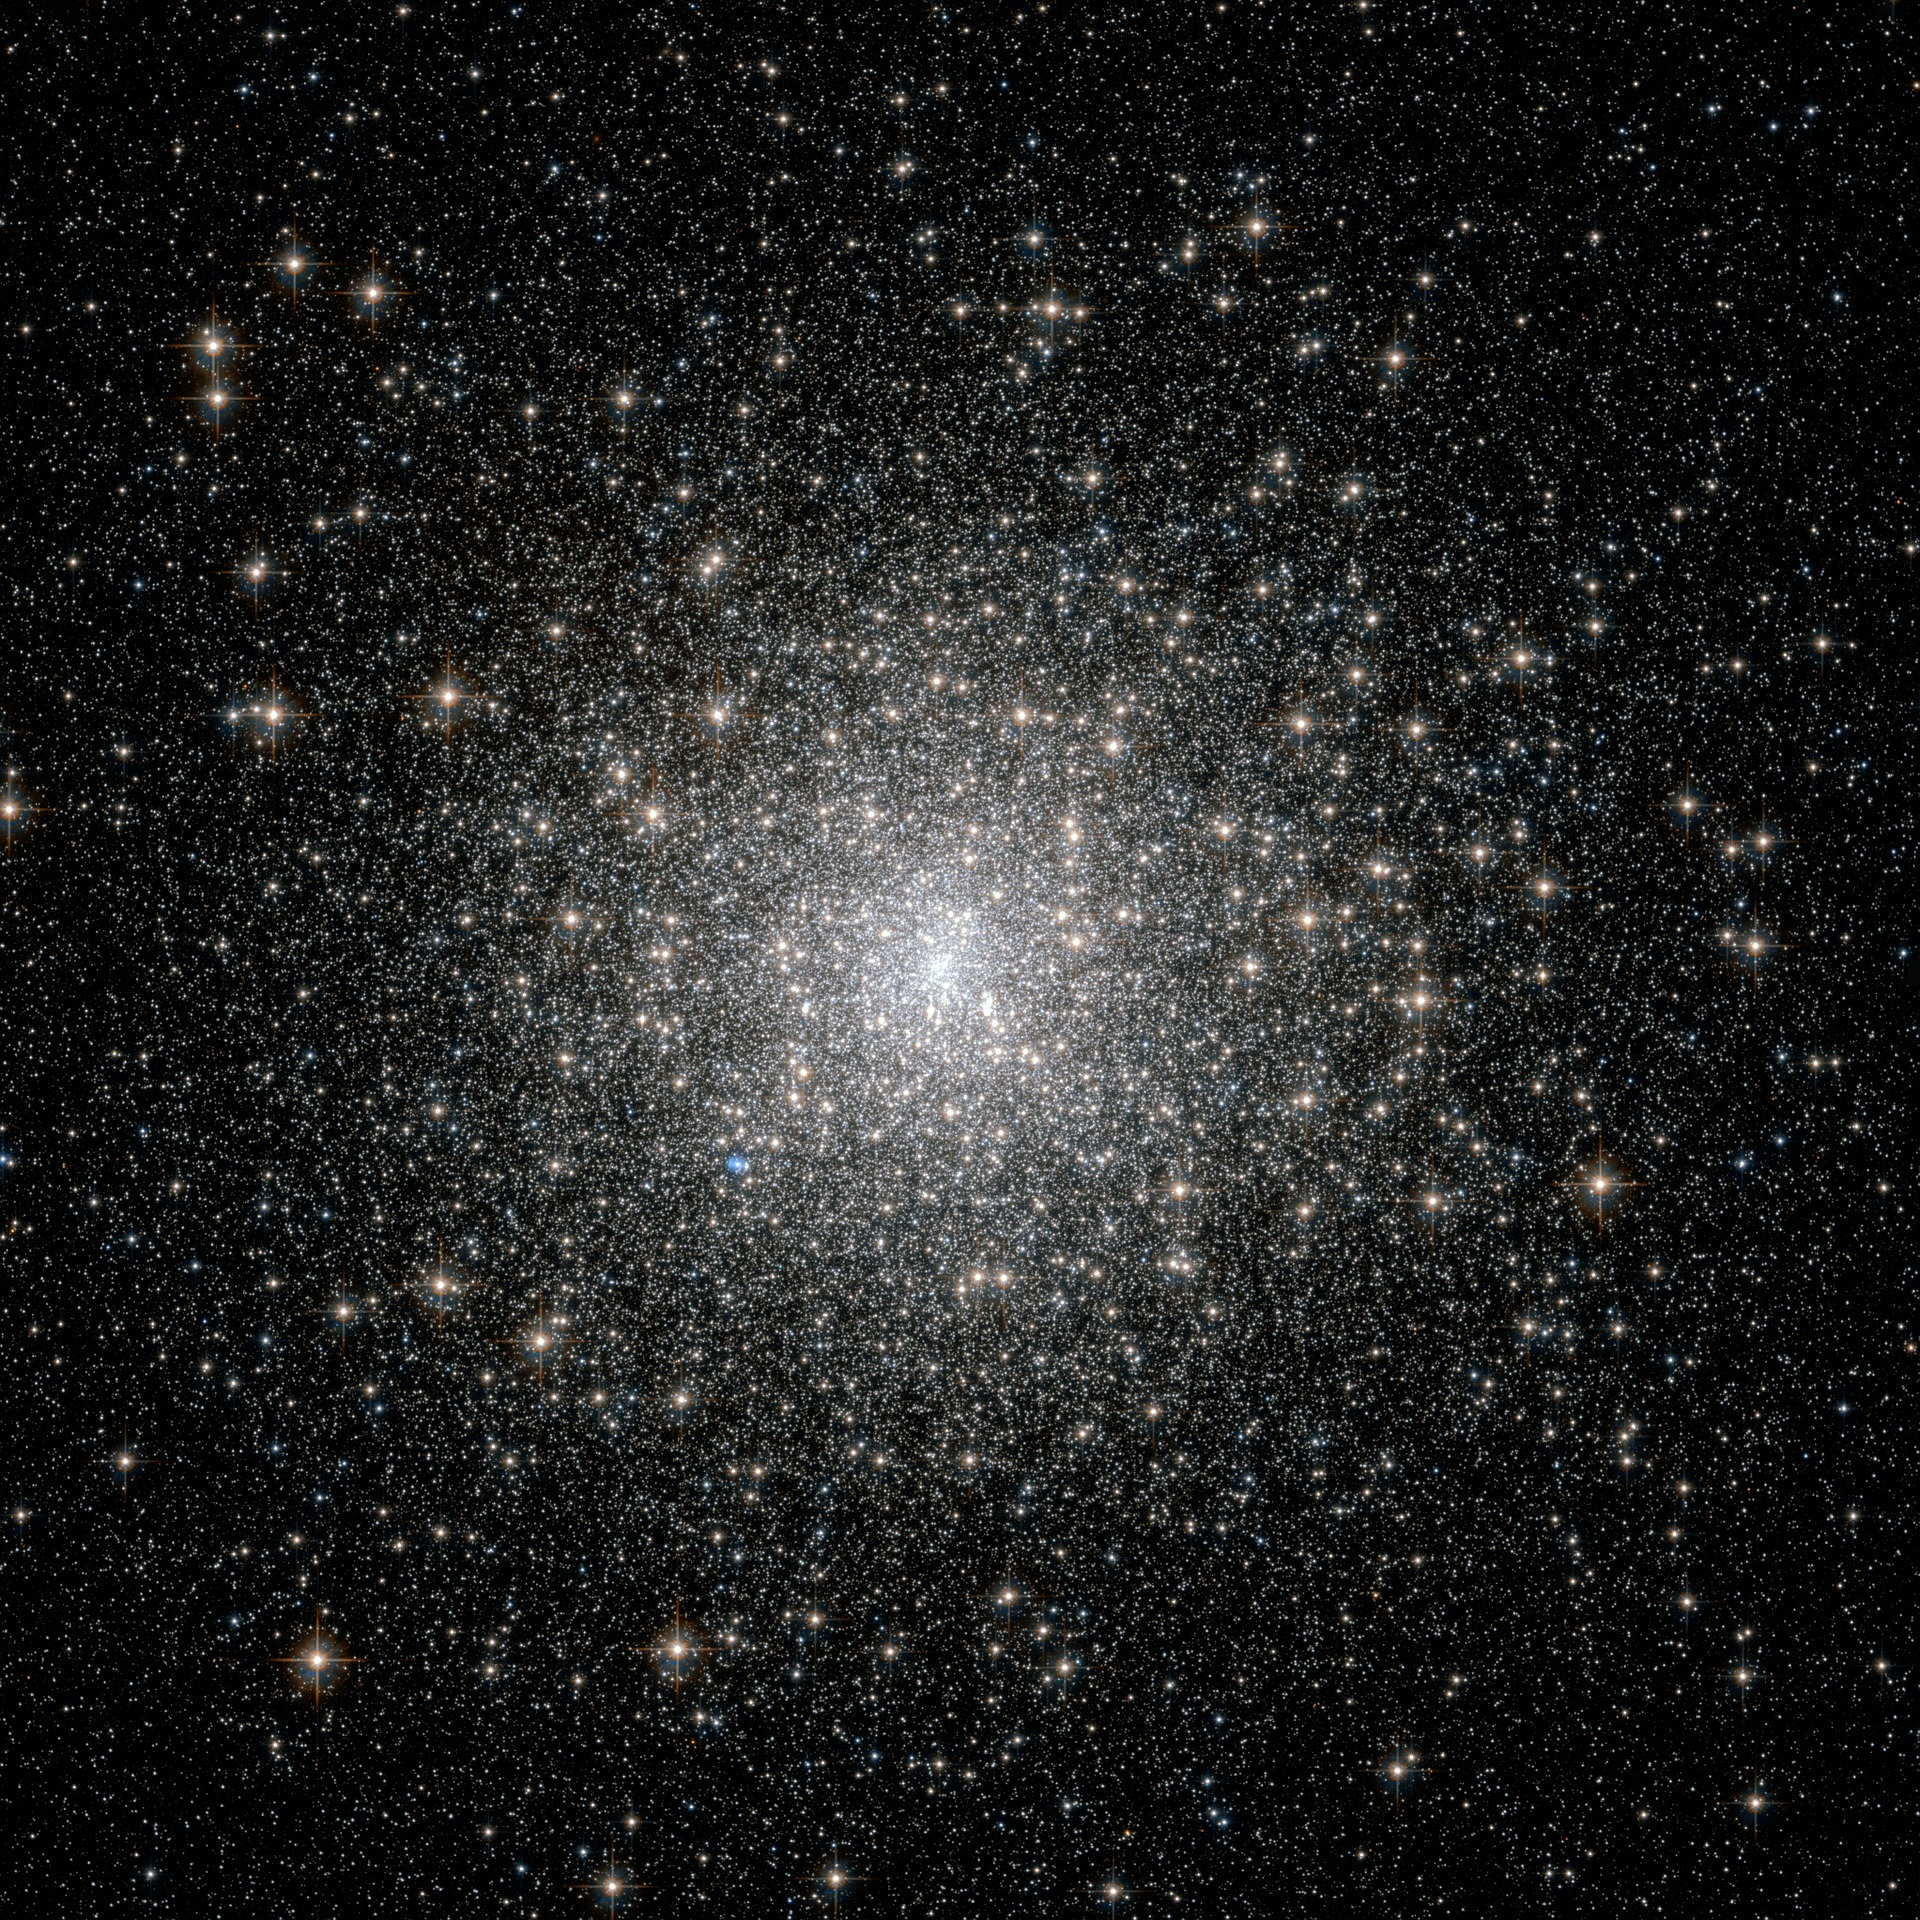 star-clusters-11643_1920